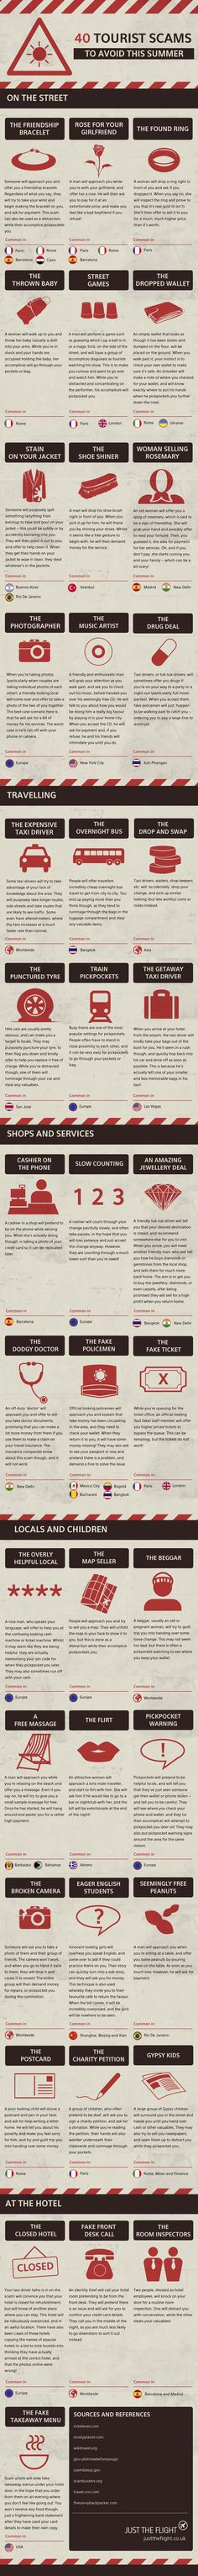 Some of the world's most popular tourist scams.  Have you fallen for any of these?